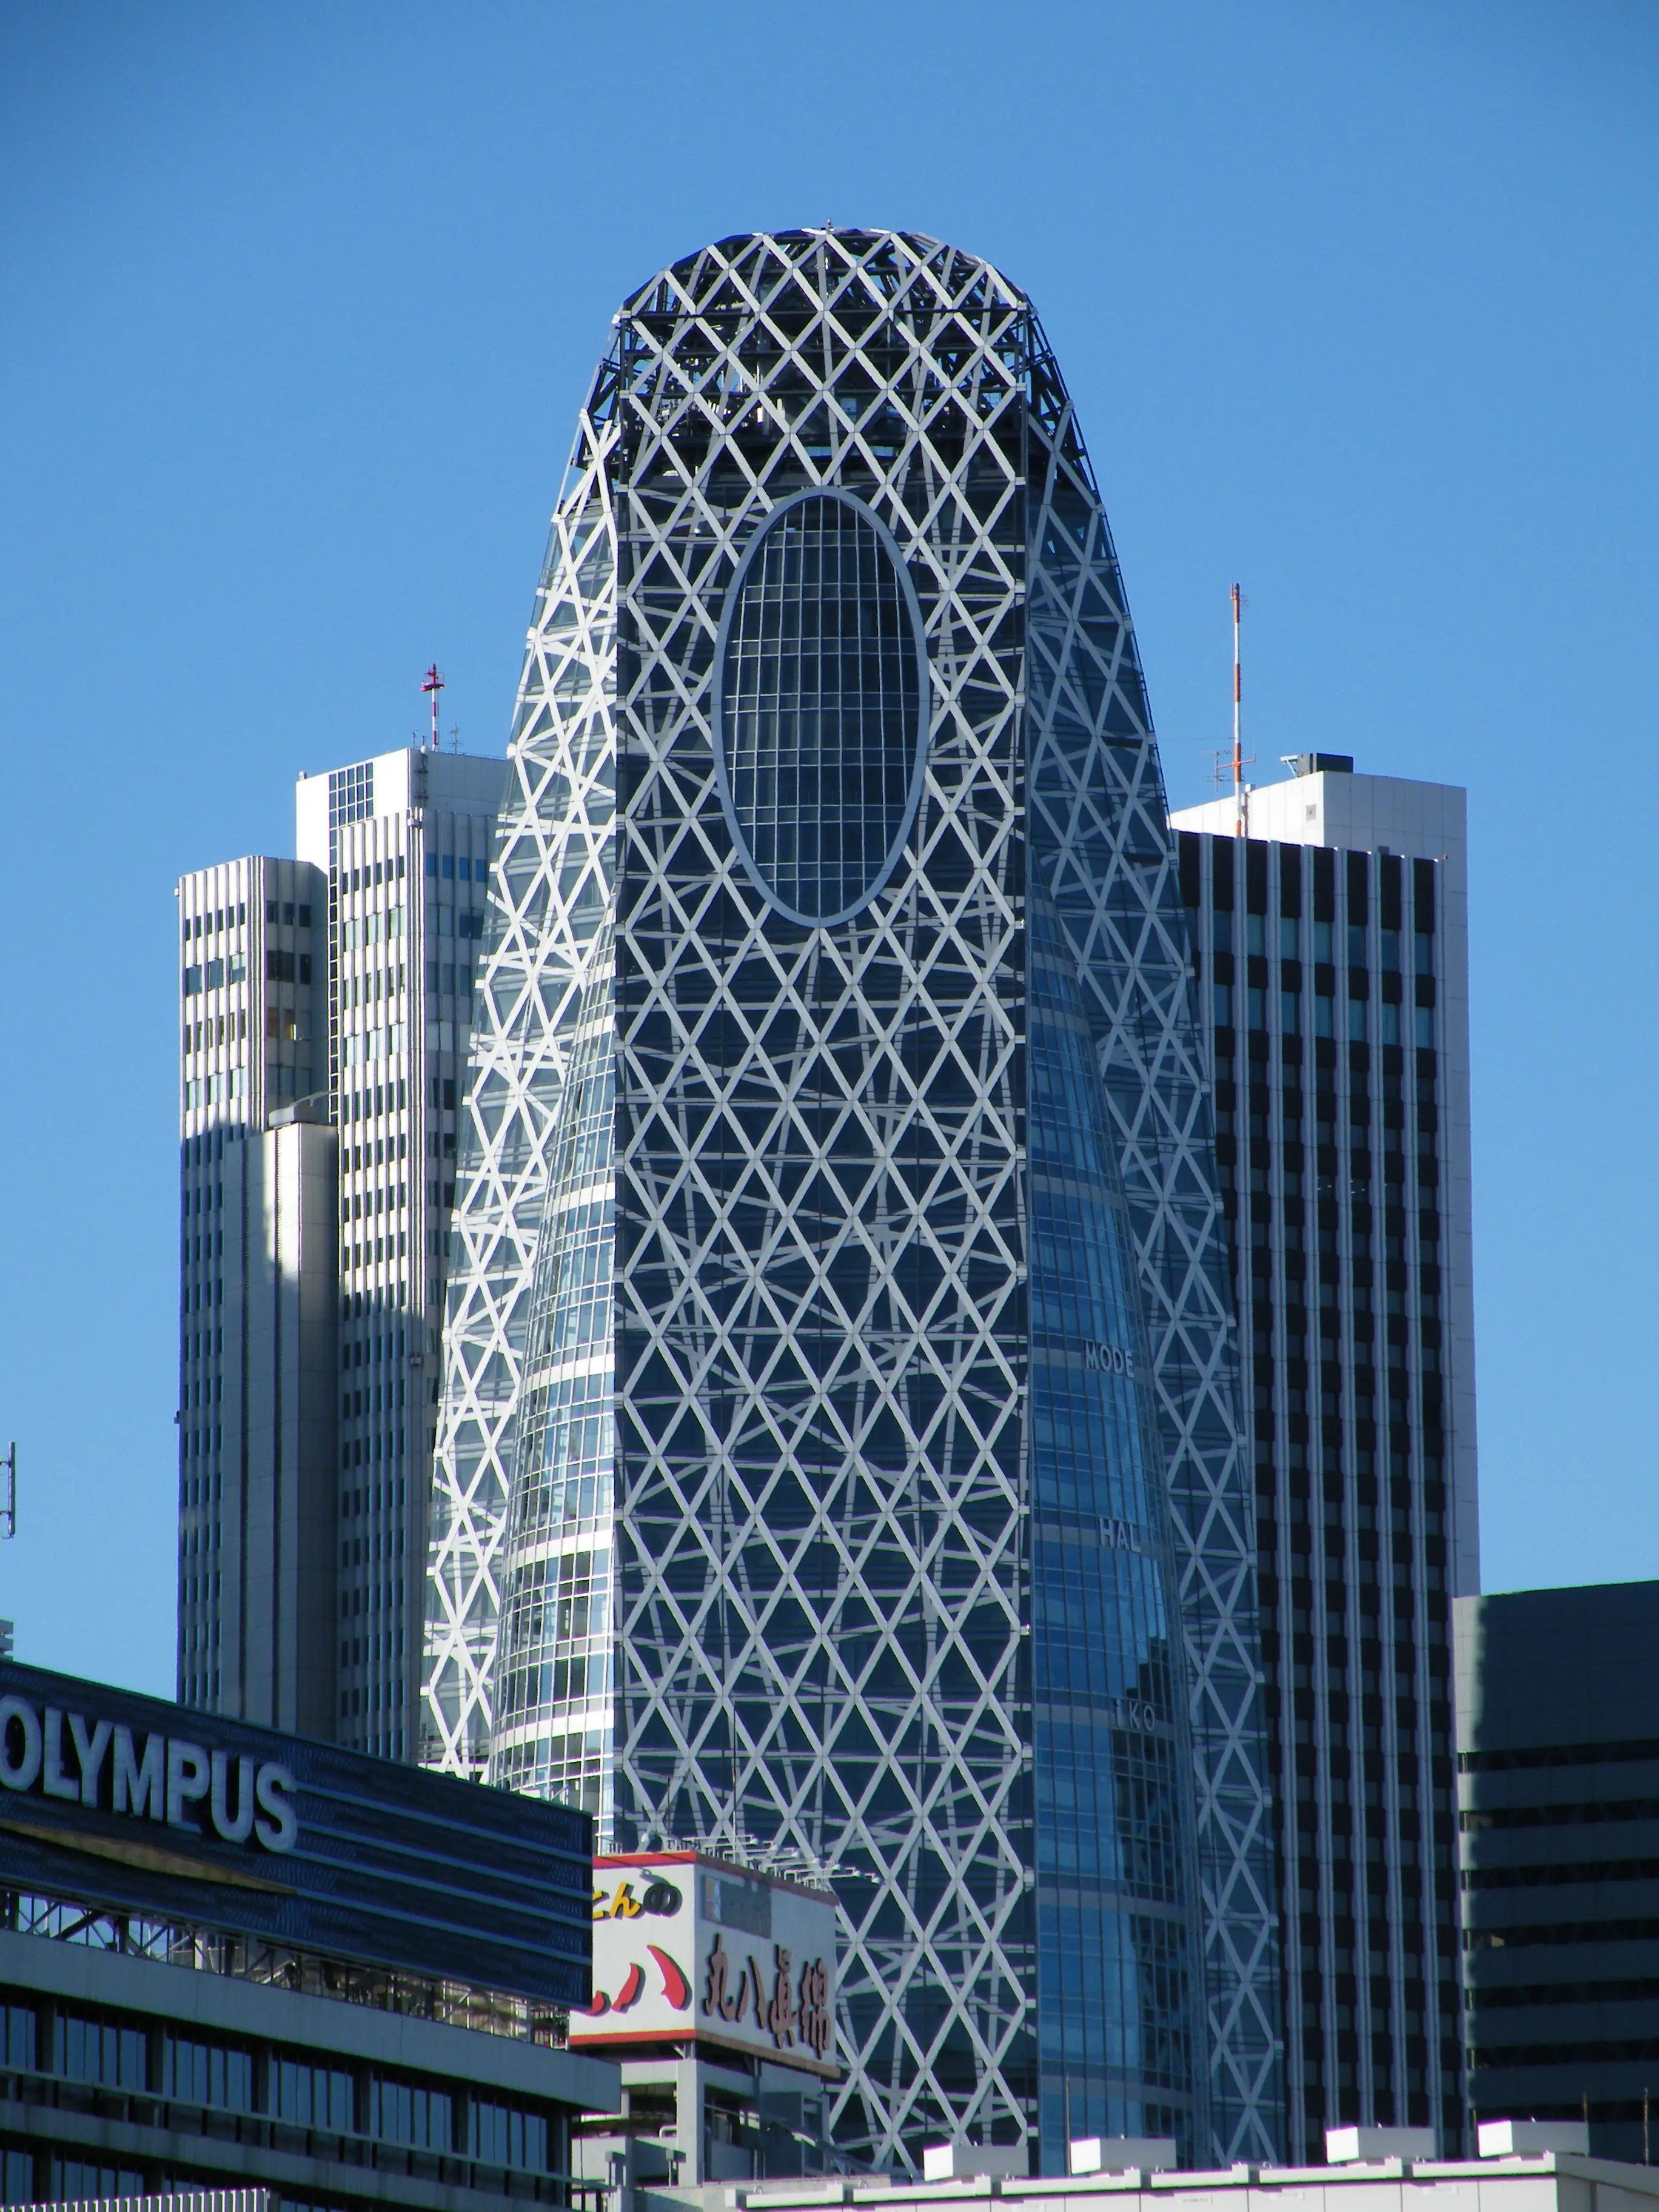 Mode Gakuen Cocoon Tower in Tokyo was completed in 2008 to house three different colleges: Tokyo Mode Gakuen, HAL Tokyo and Shuto Ikō. It's 669 feet tall and most rooms offer sweeping views of the surrounding city.